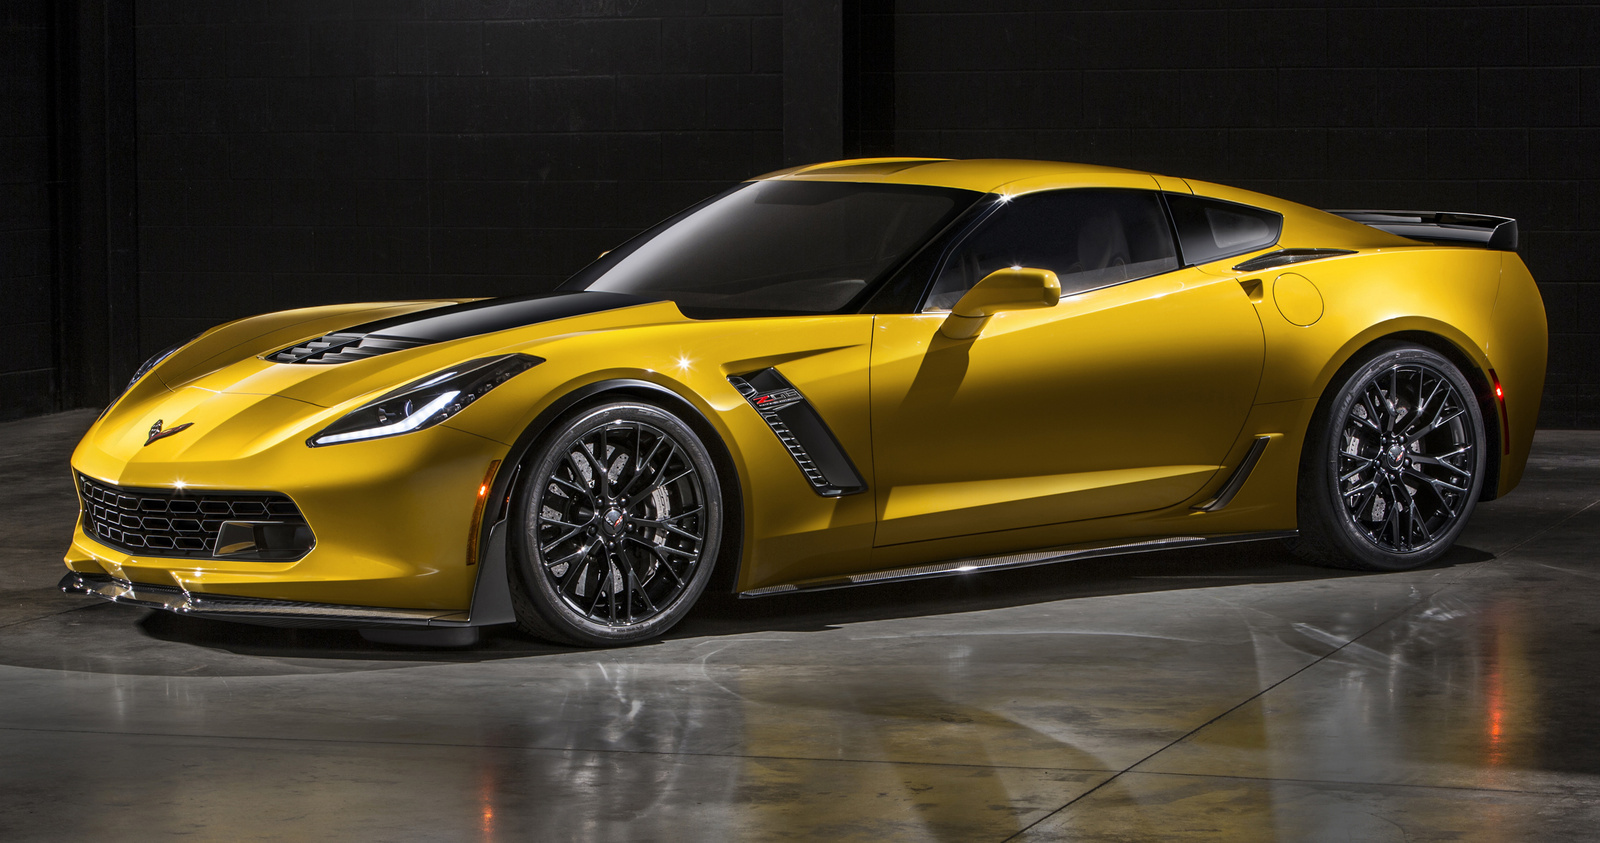 2015 / 2016 Chevrolet Corvette for Sale in your area ...